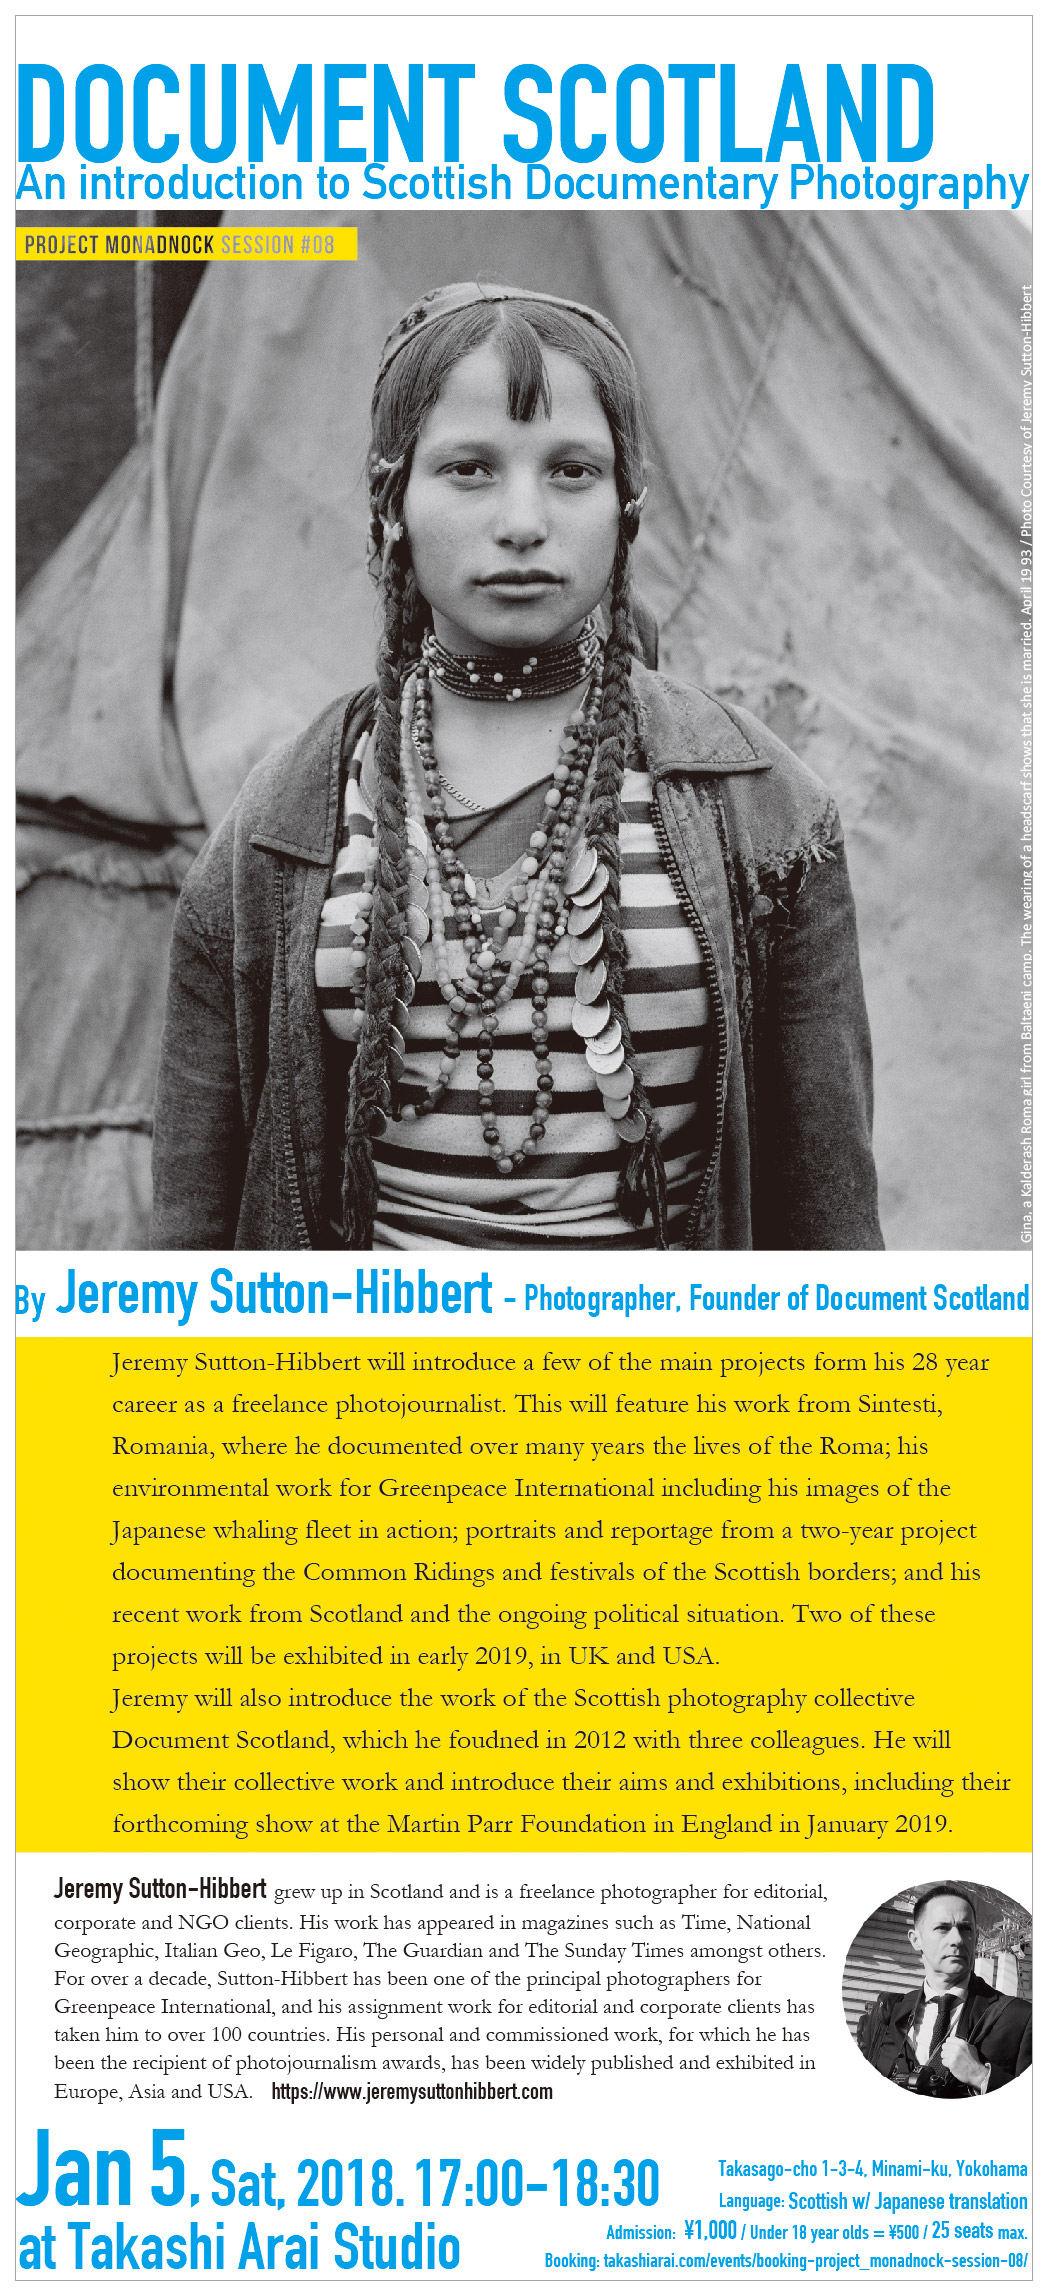 "Project Monadnock - Session #08: Jeremy Sutton-Hibbert ""Document Scotland - An introduction to Scottish Documentary Photography"""